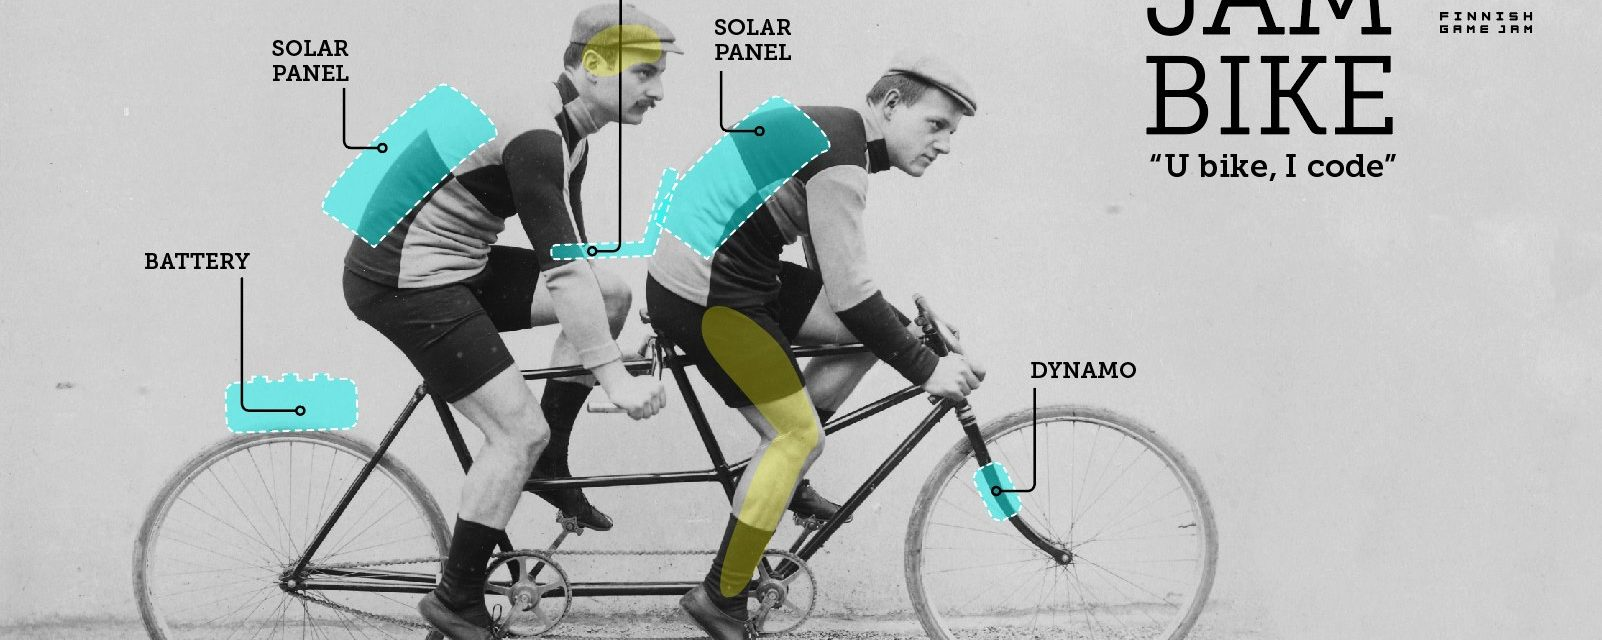 2 Dev's On A Tandem Bike Create A Game With Solar Power